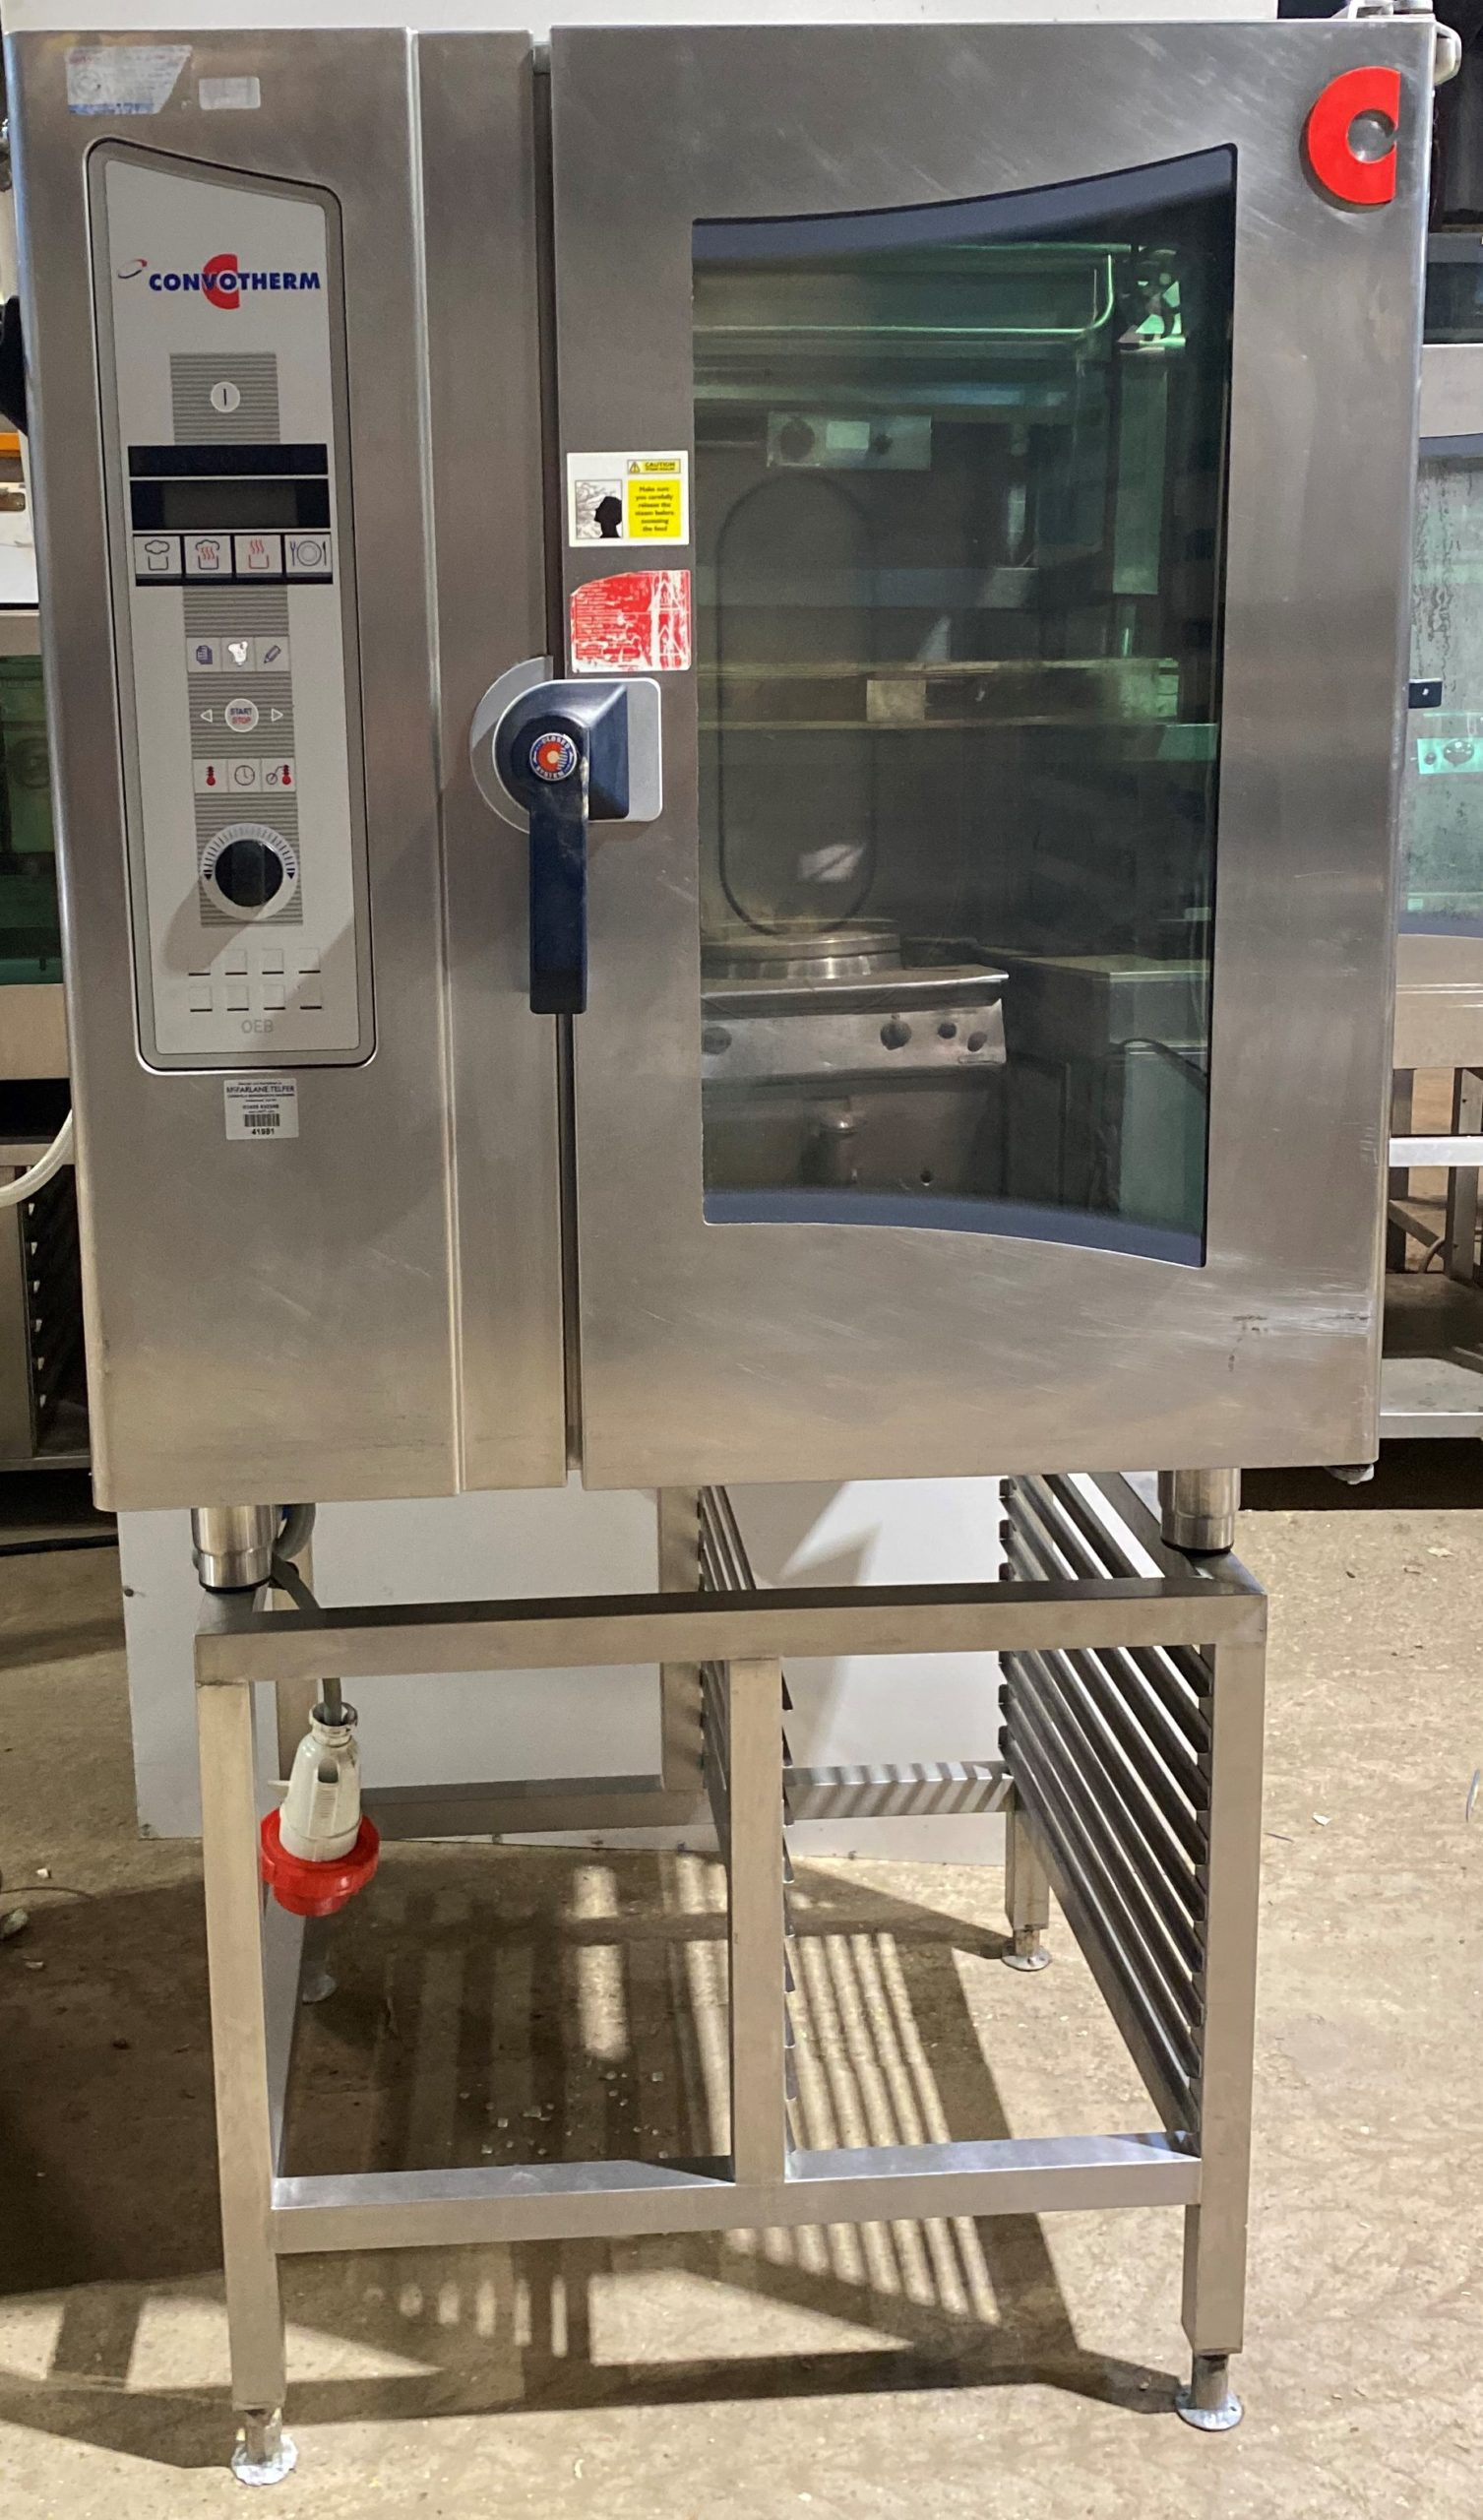 Convotherm OEB10.10 – 10 grid combi oven